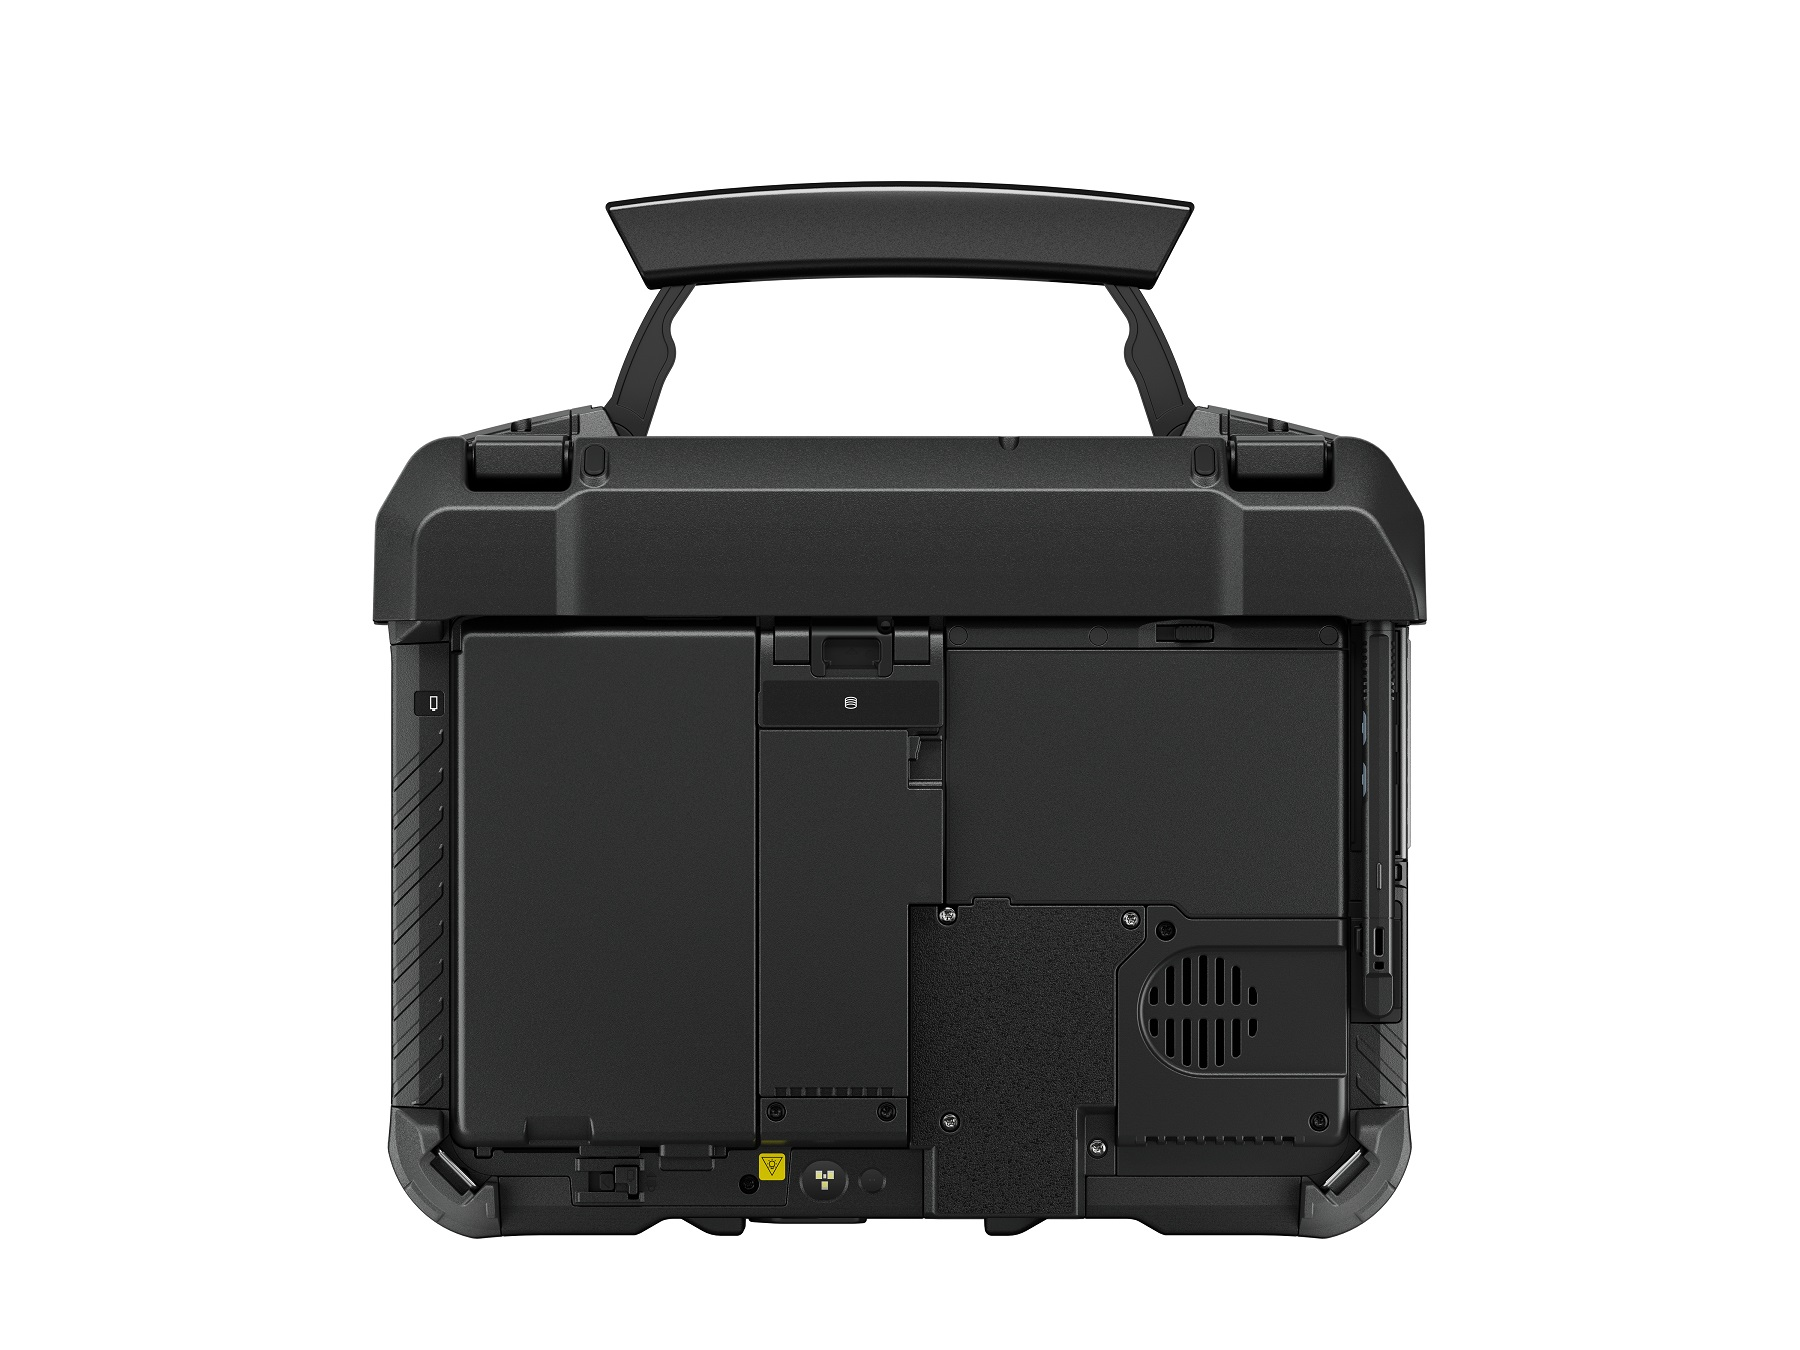 A rear look at the Toughbook G2